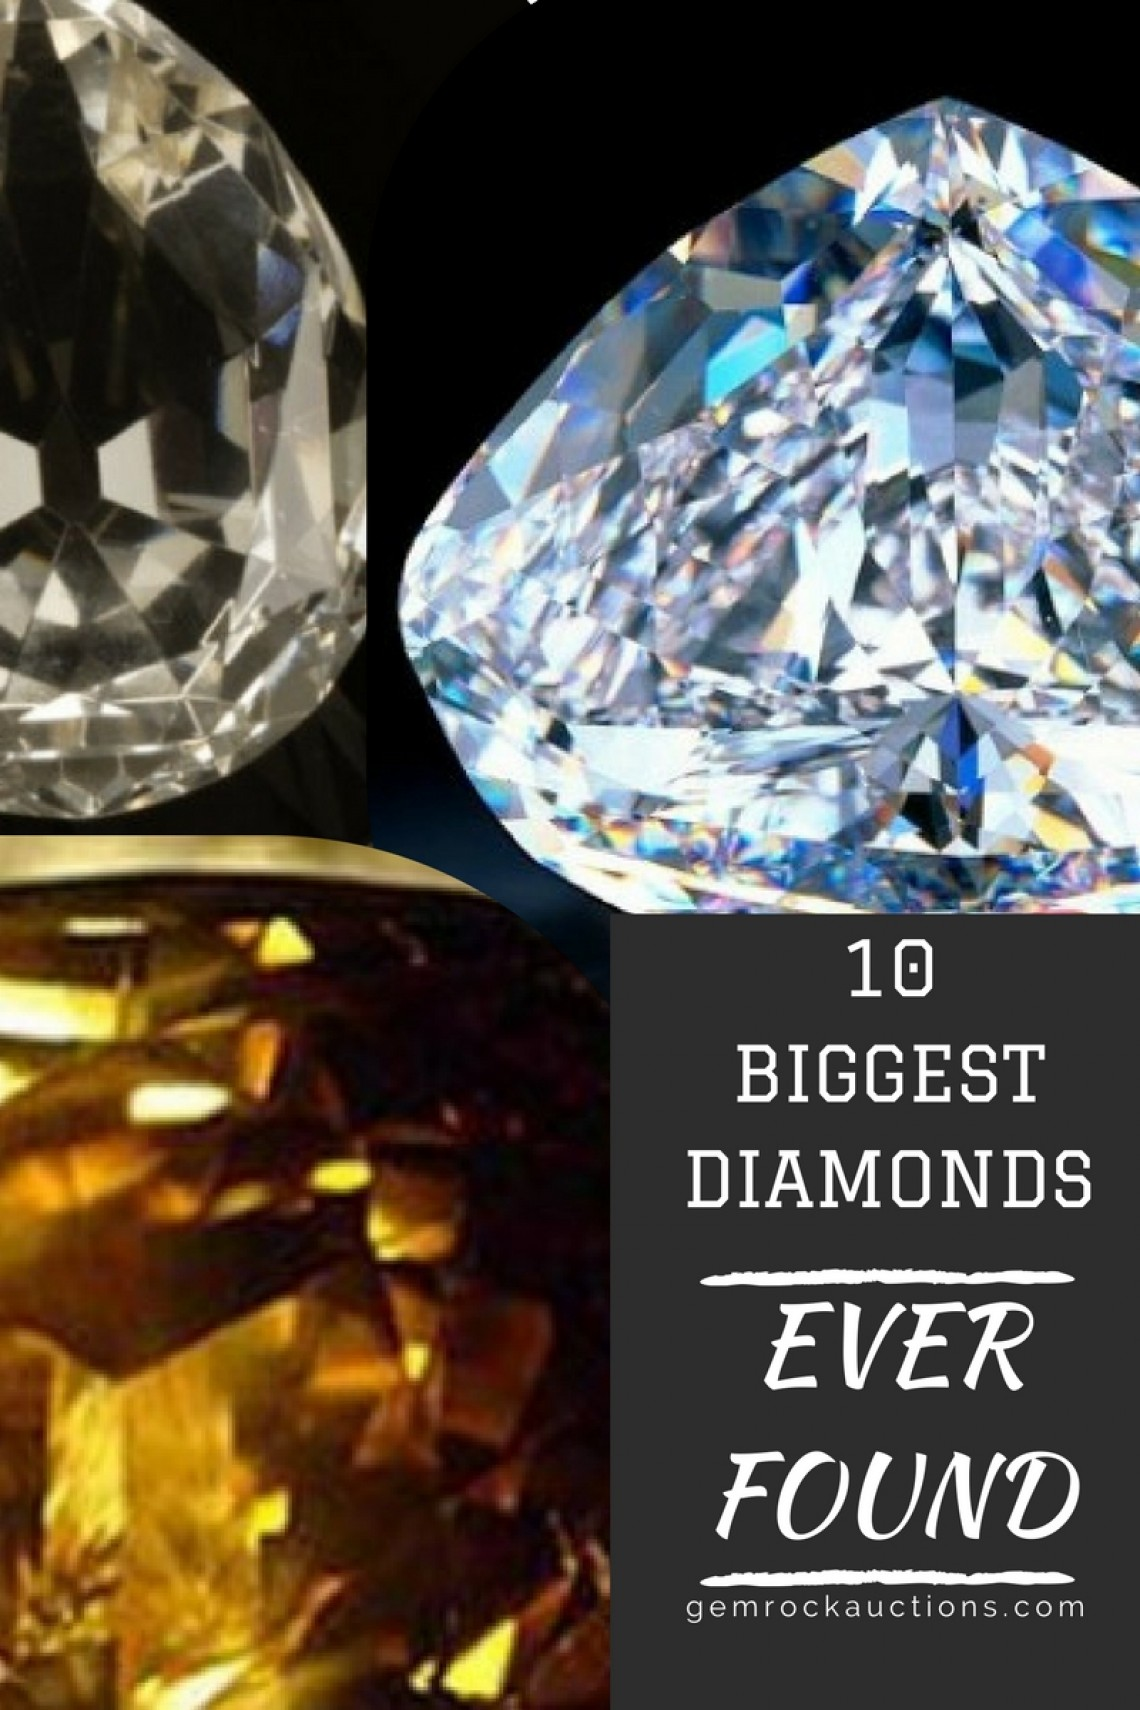 jewelry stores ever size cardi diamond earrings best cut of b sale engagement big rings wedding emerald biggest single for huge full oversized ring